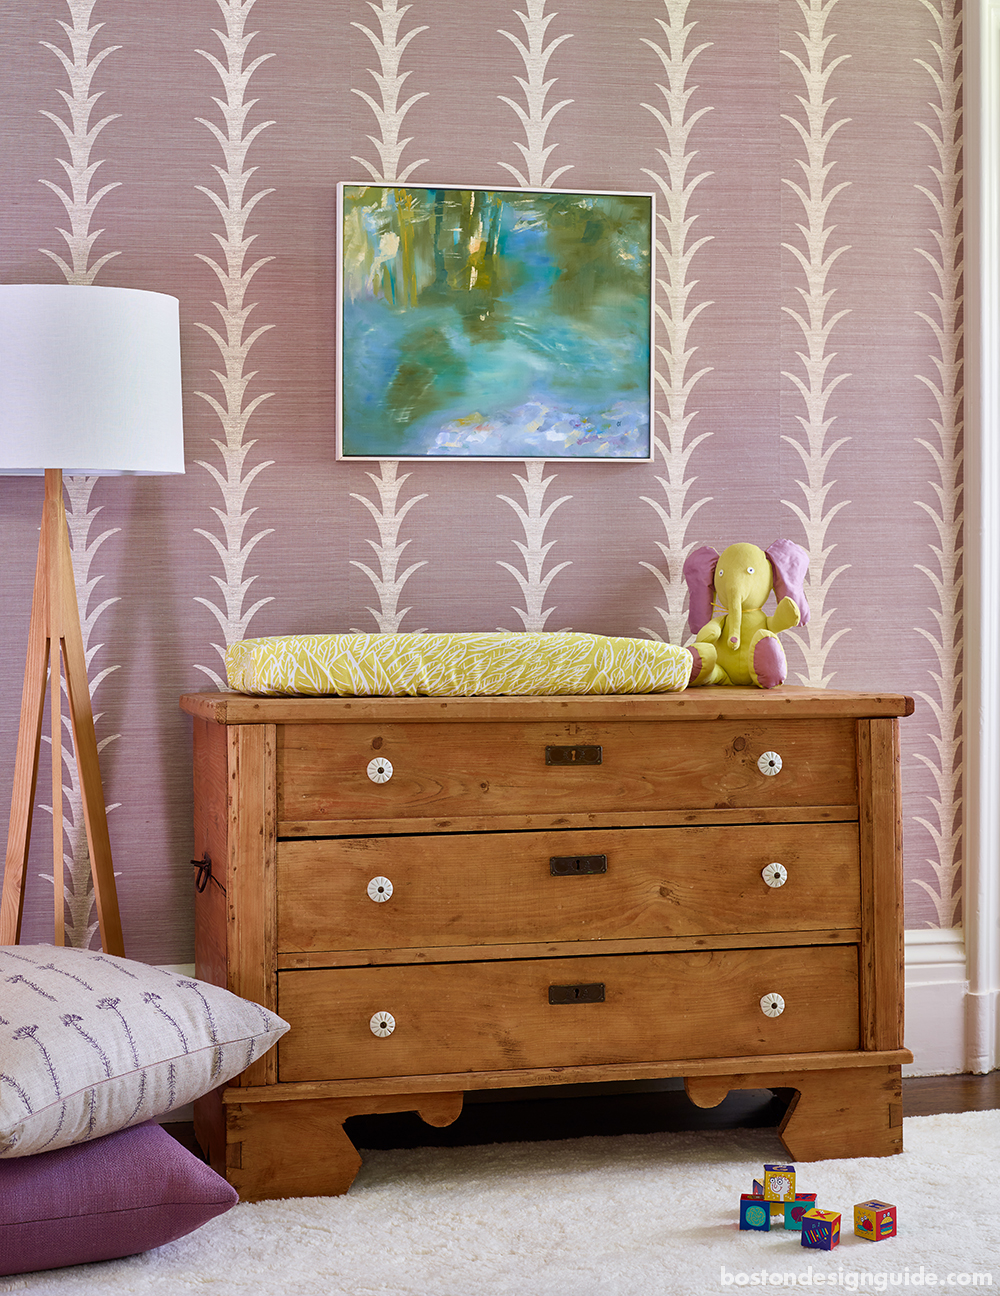 high end furniture design in New England